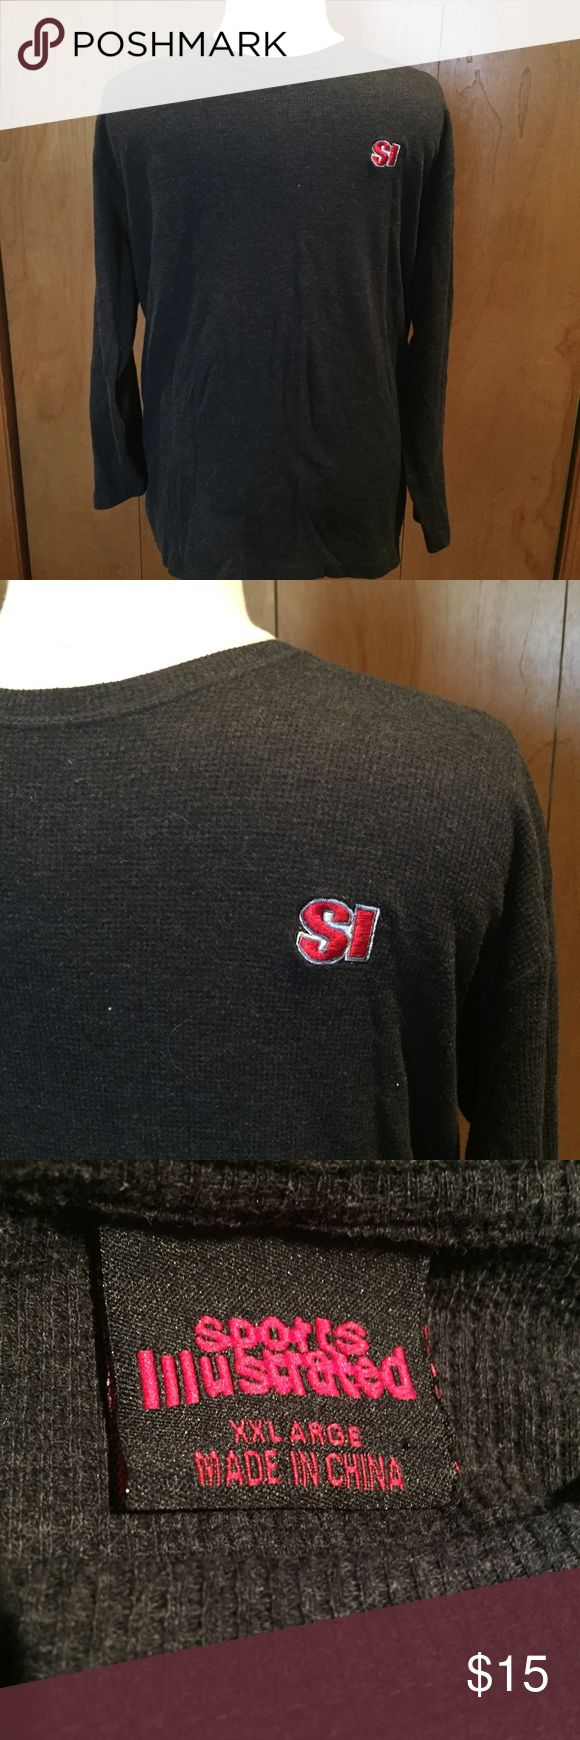 Sports ILListrated long sleeve waffle weave-sz XXL Dark gray with red SI LOGO sports illistrated Shirts Tees - Long Sleeve